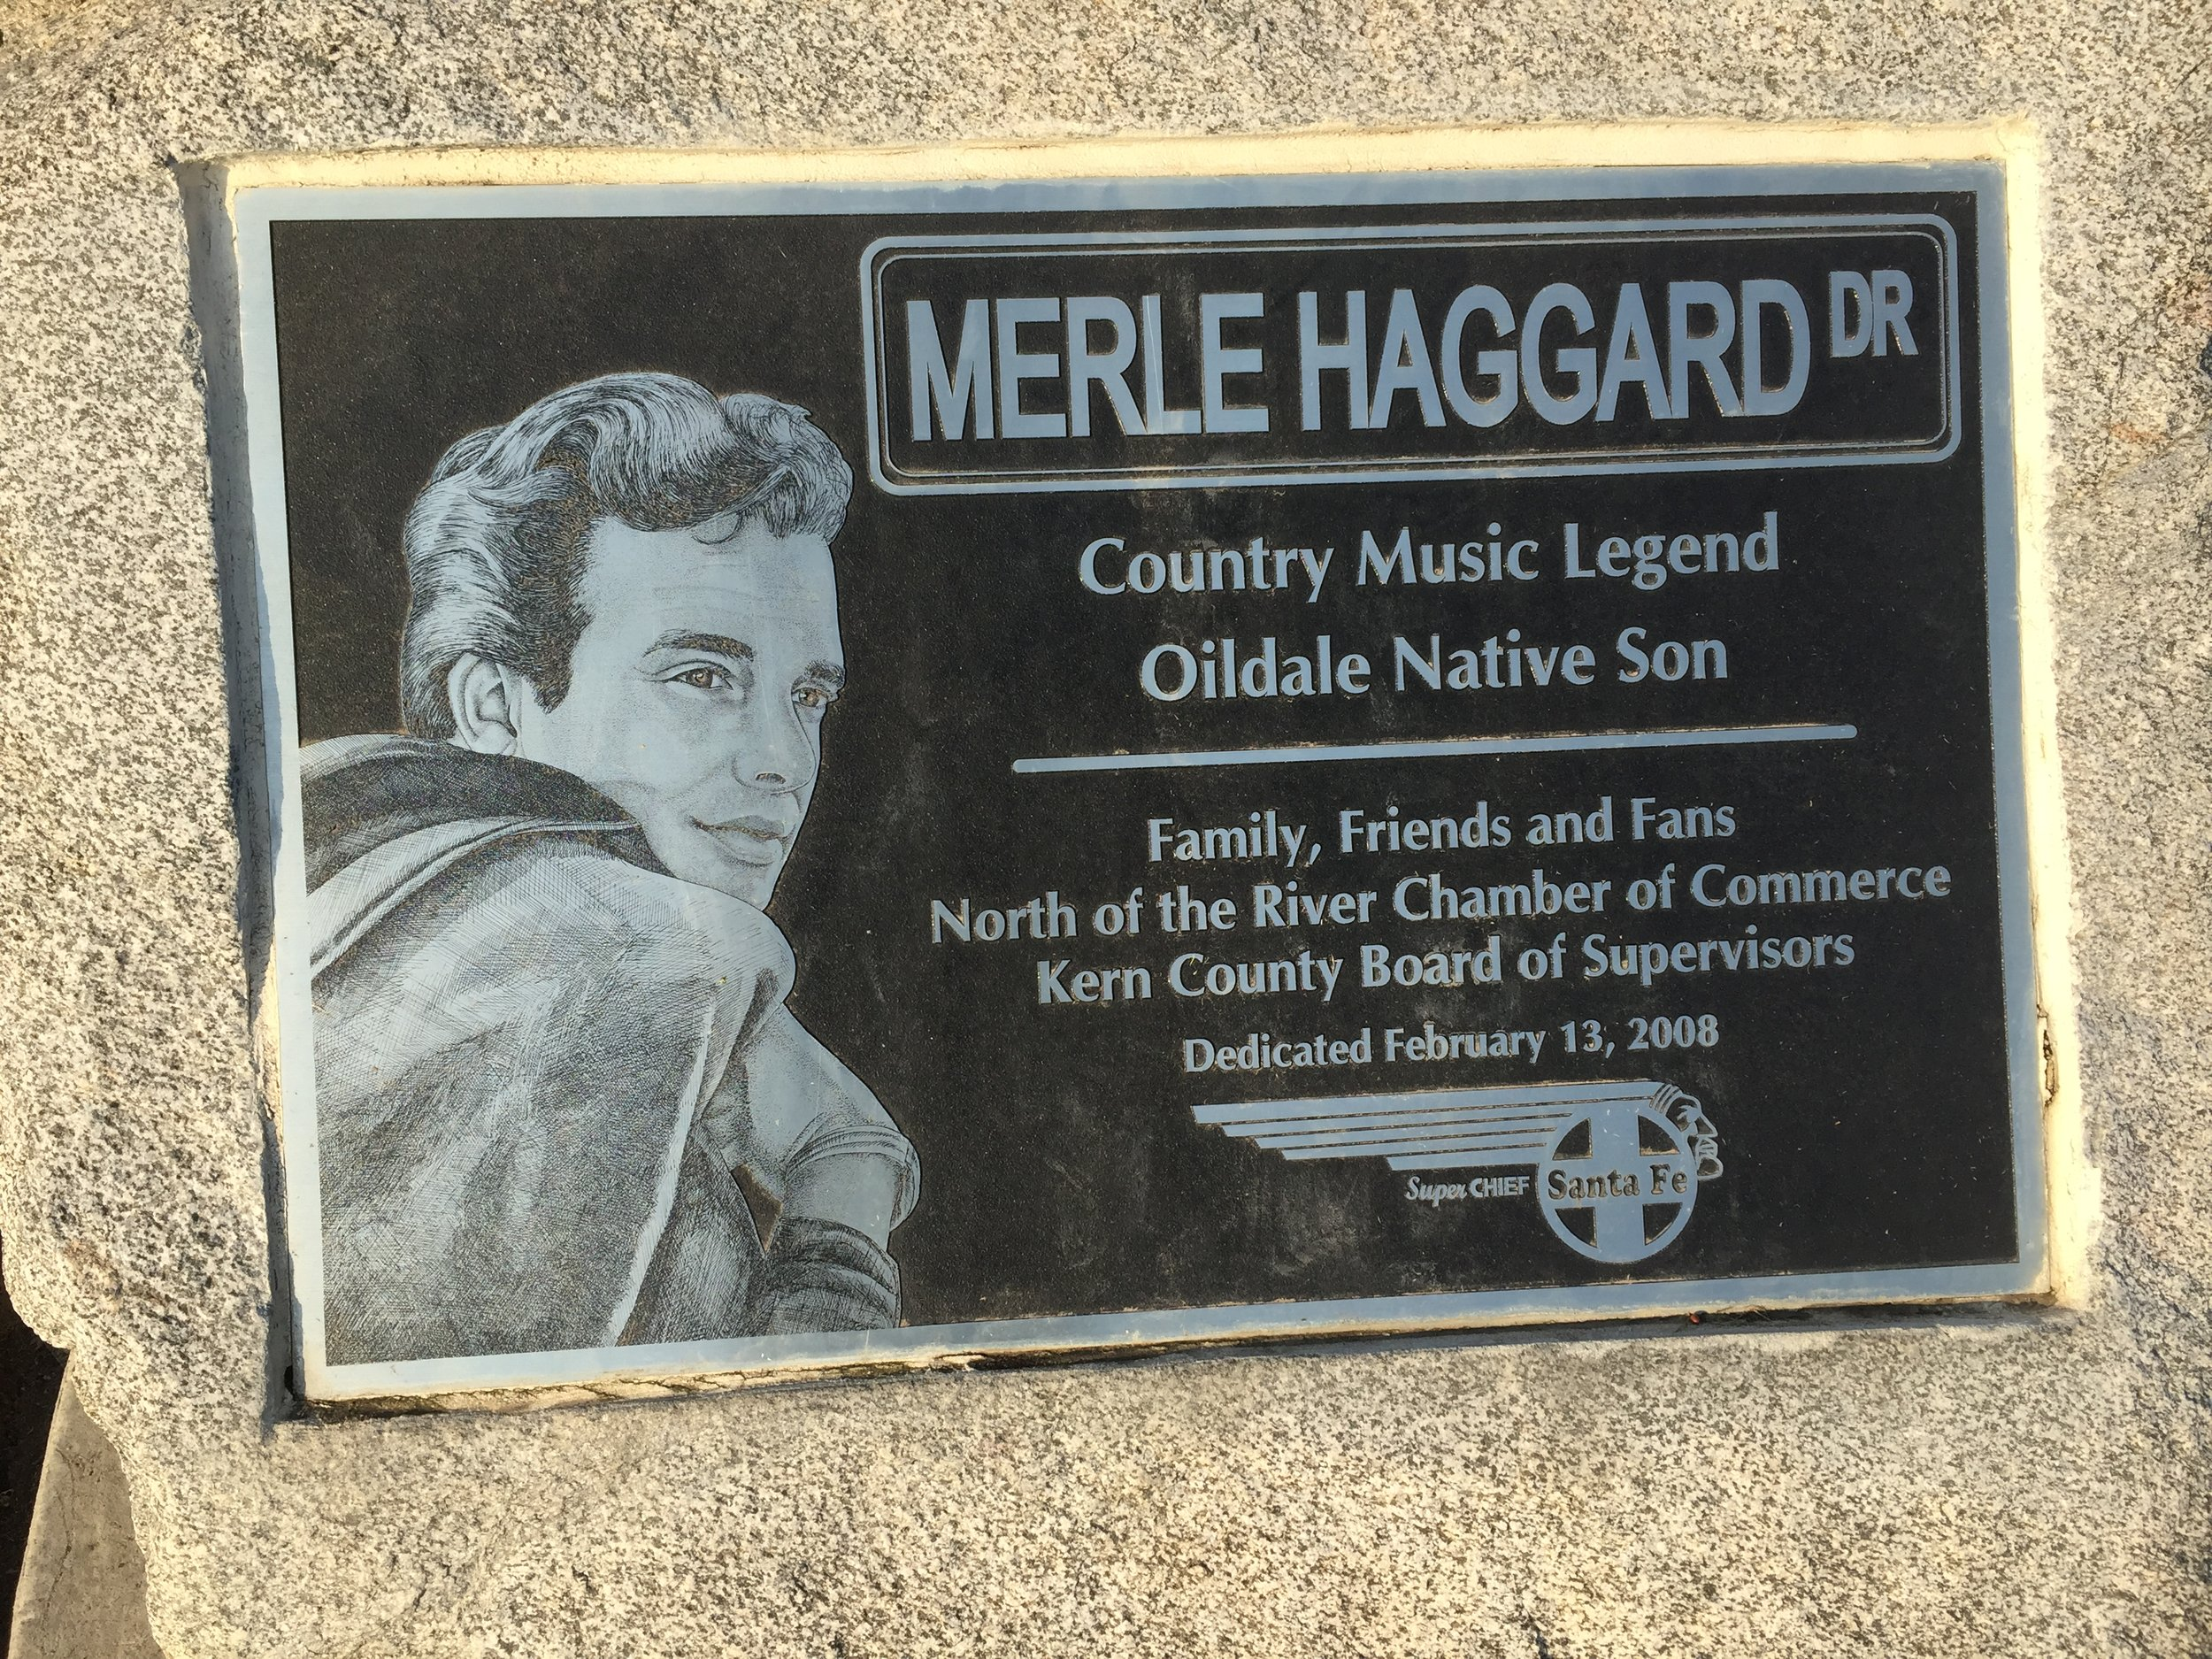 A plaque honoring Merle Haggard sets in front of a Harley Davidson dealership north of the City of Bakersfield. Photo: Steve Newvine